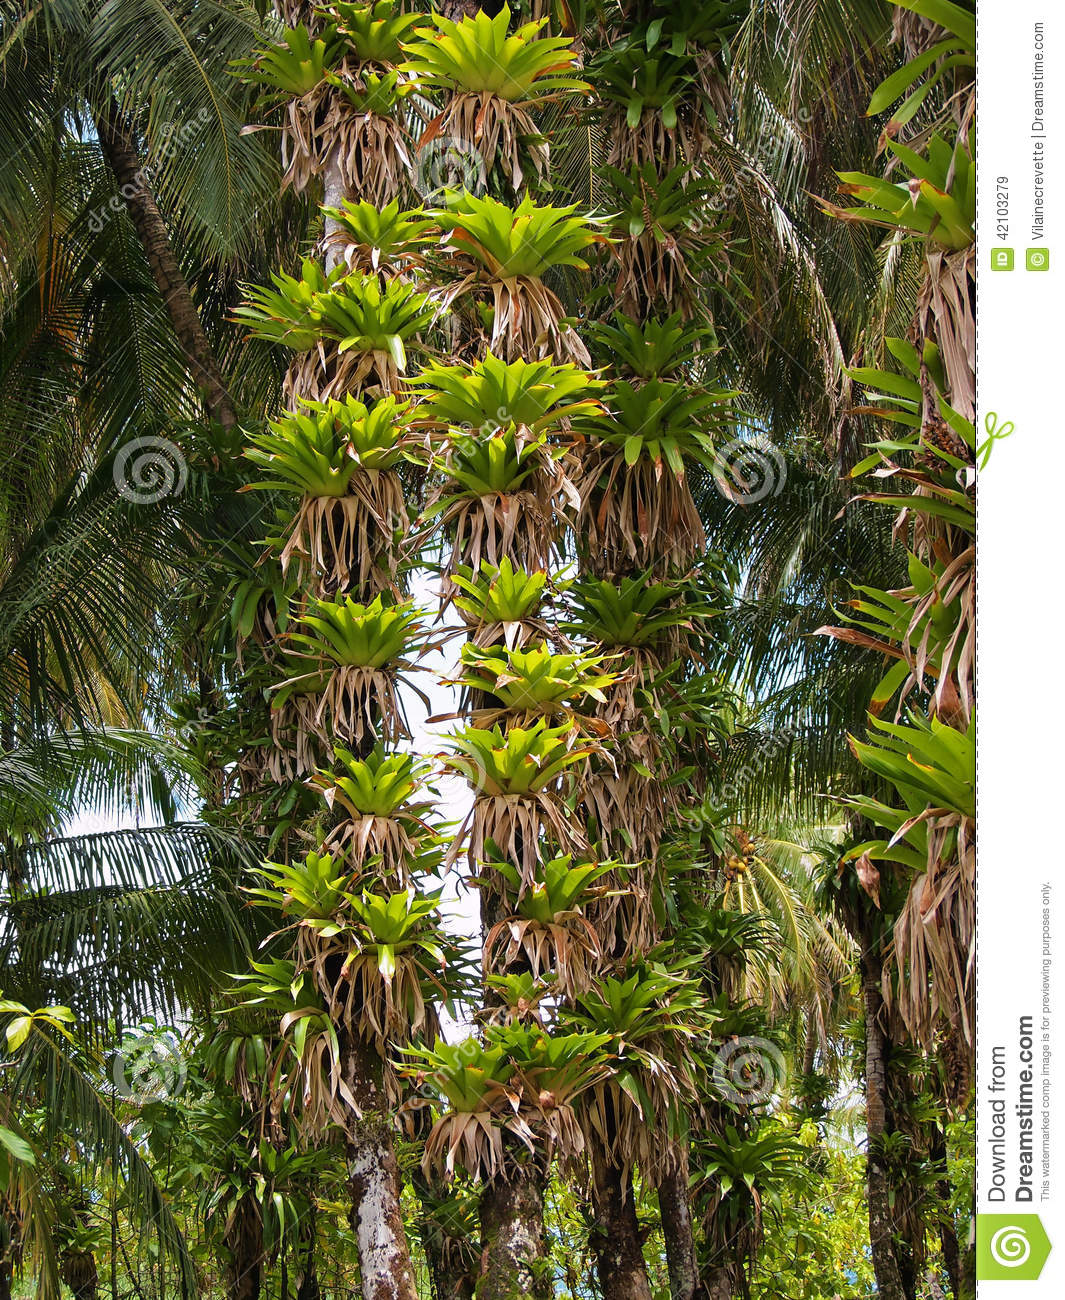 Many epiphytes Bromeliad on trunks of coconut palm trees, Caribbean ...